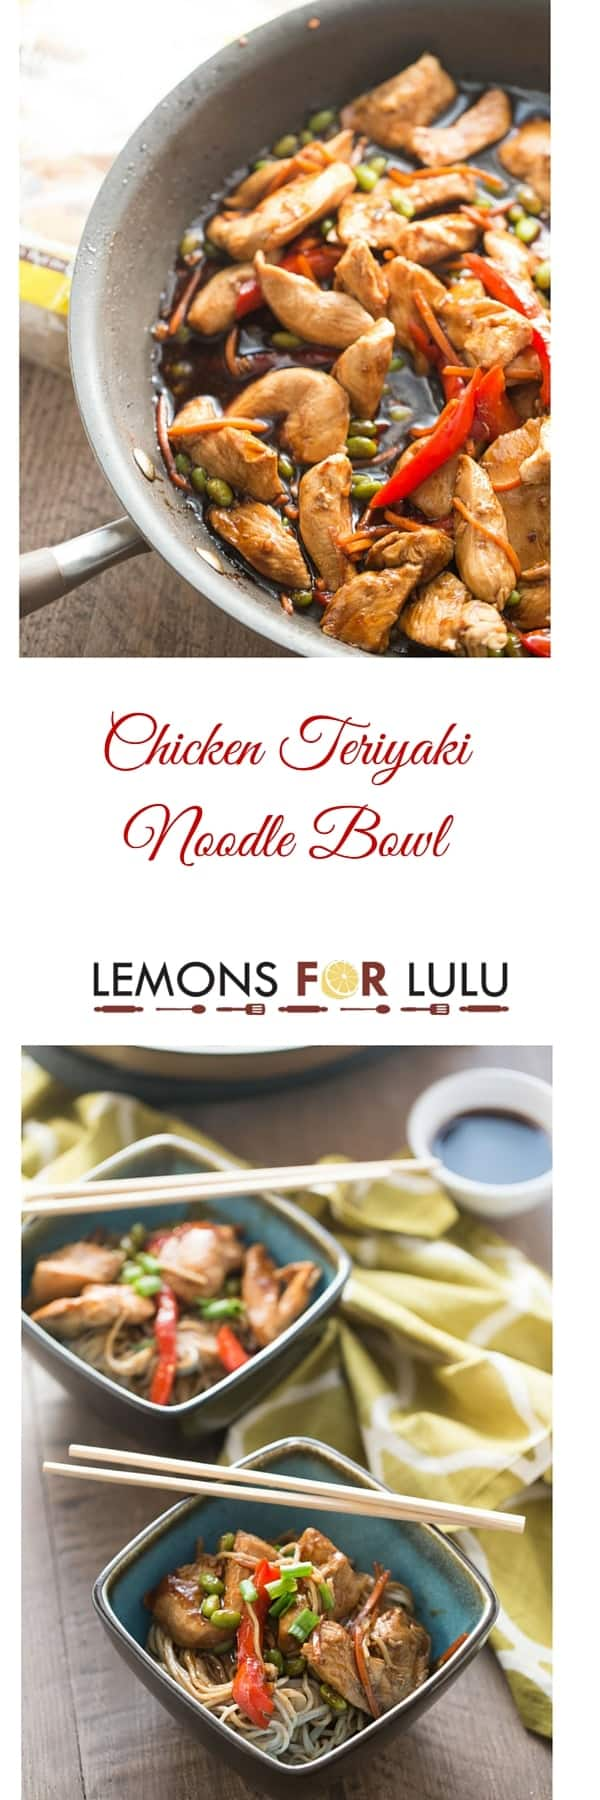 photo collage - simple chicken teriyaki in bowls.